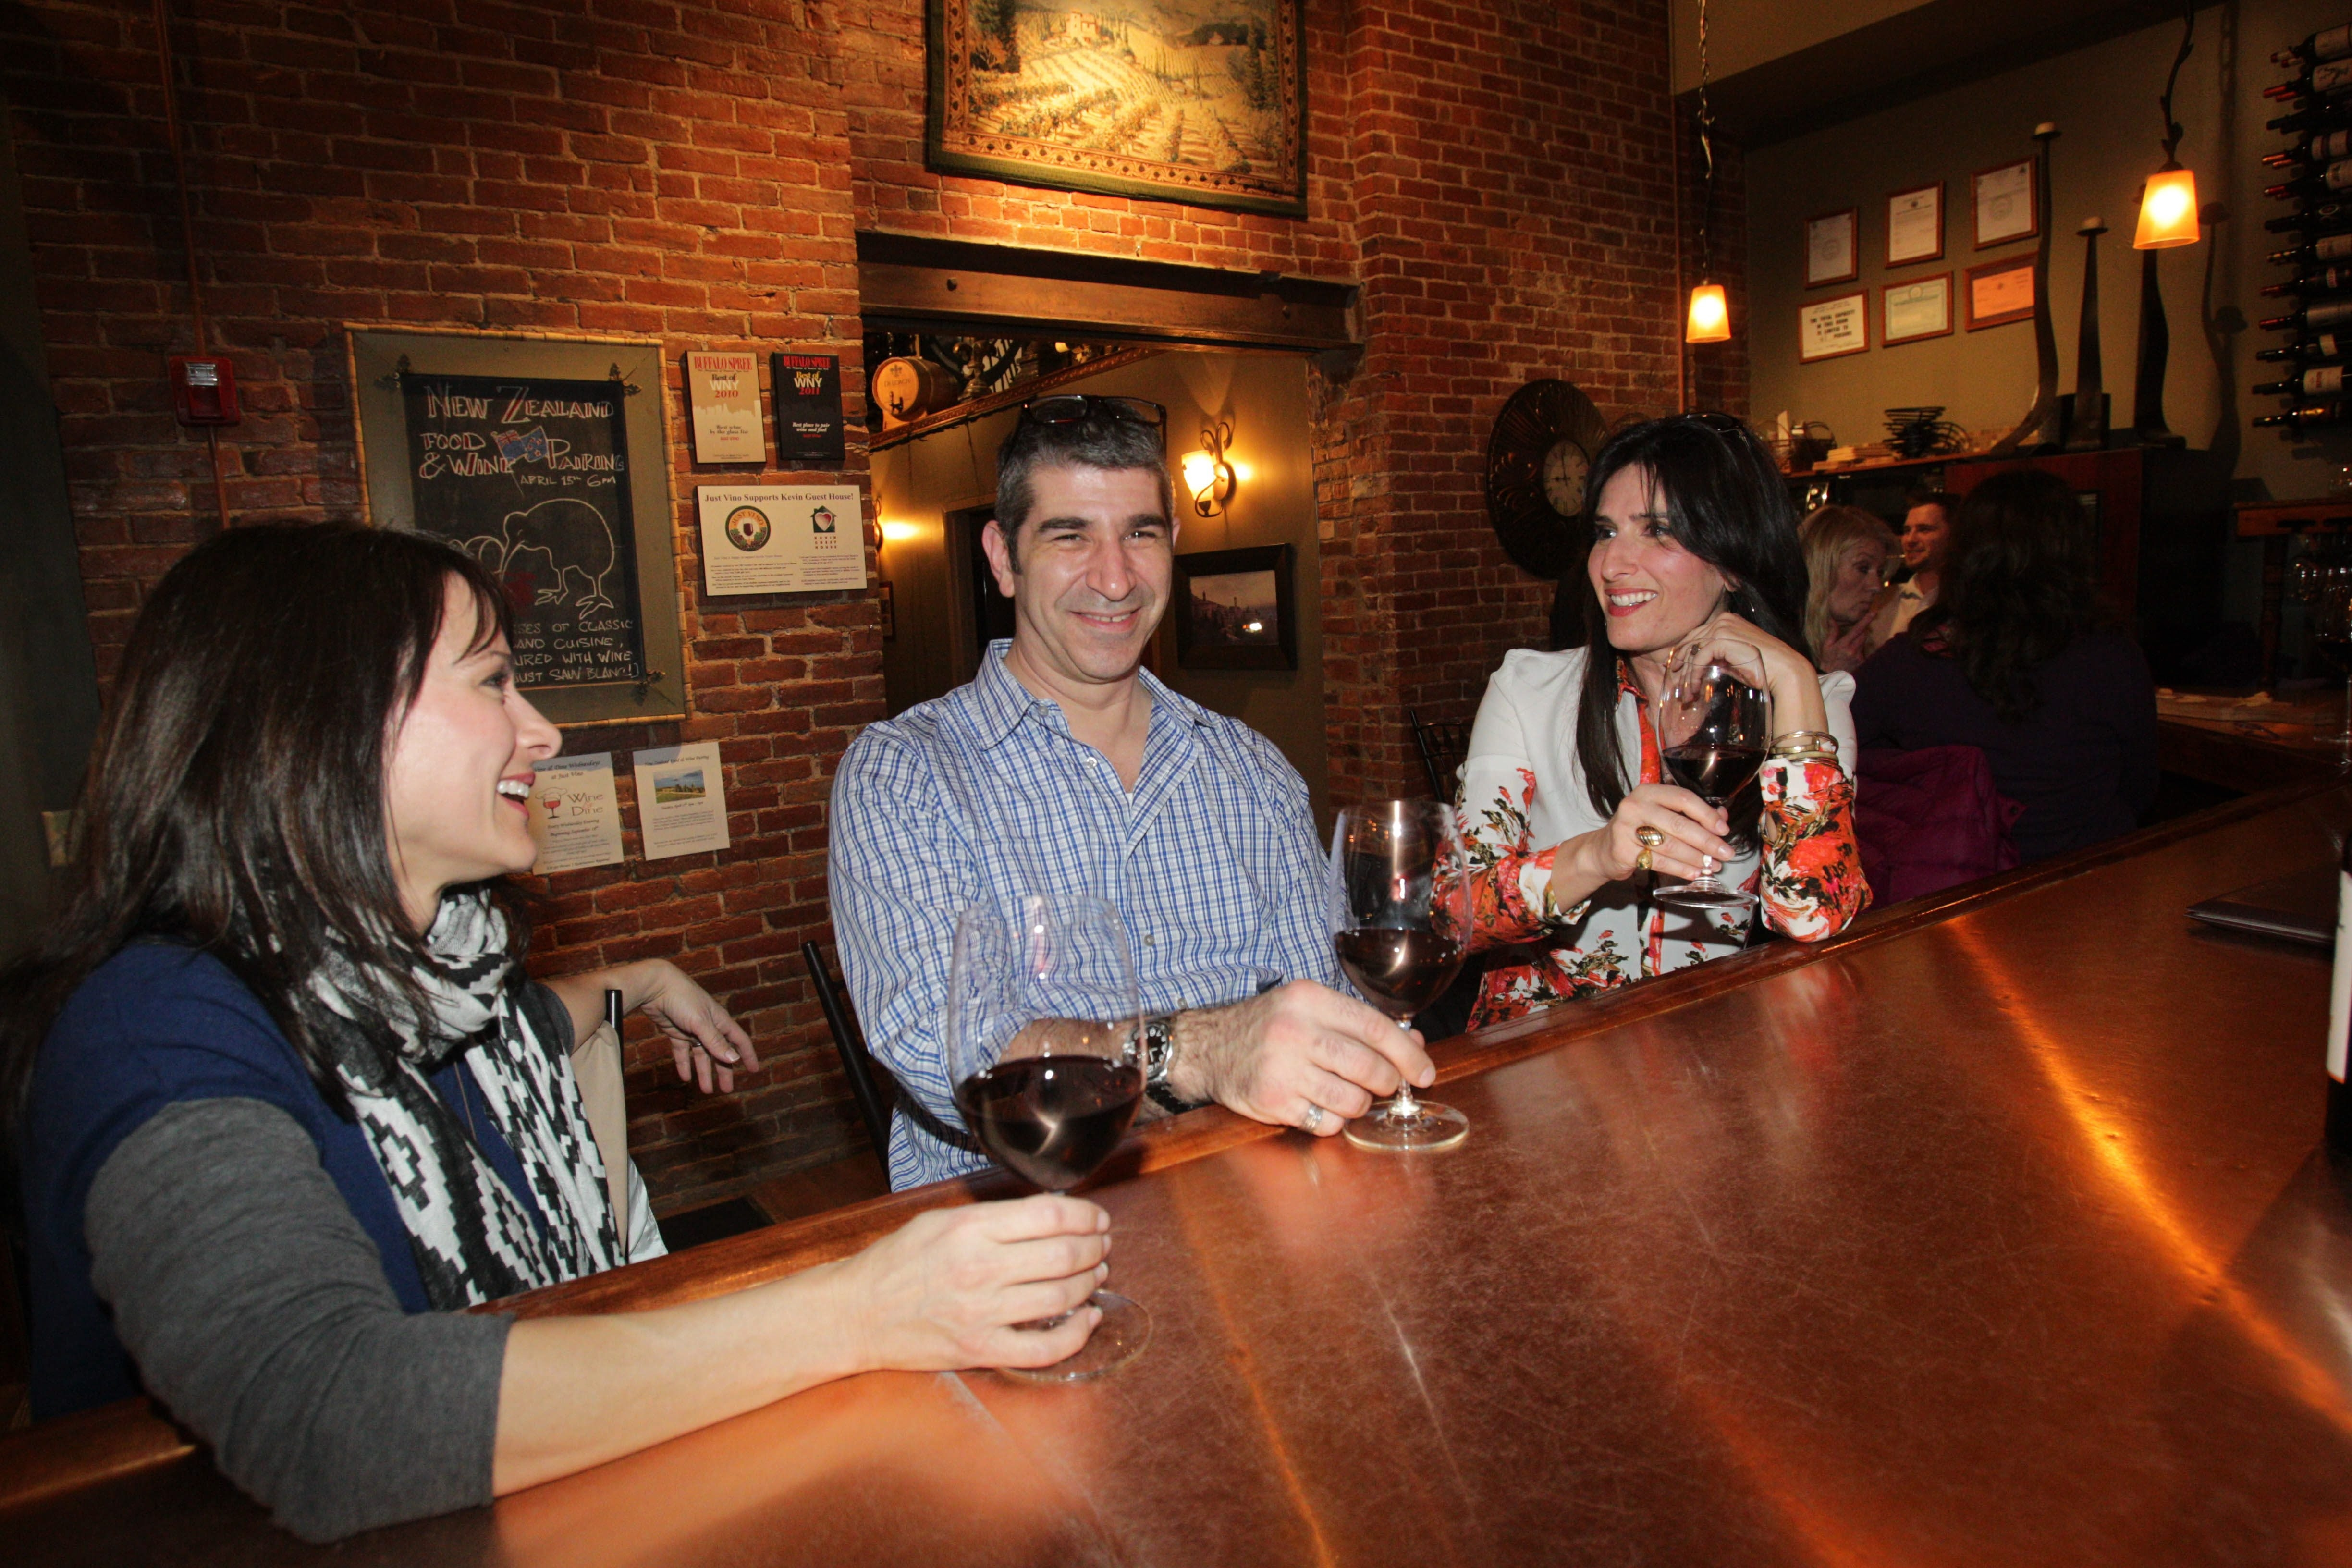 Rhea Anna of Buffalo, Doug Levere of Amherst and Leah Glickman of Buffalo enjoy glasses of wine at Just Vino.